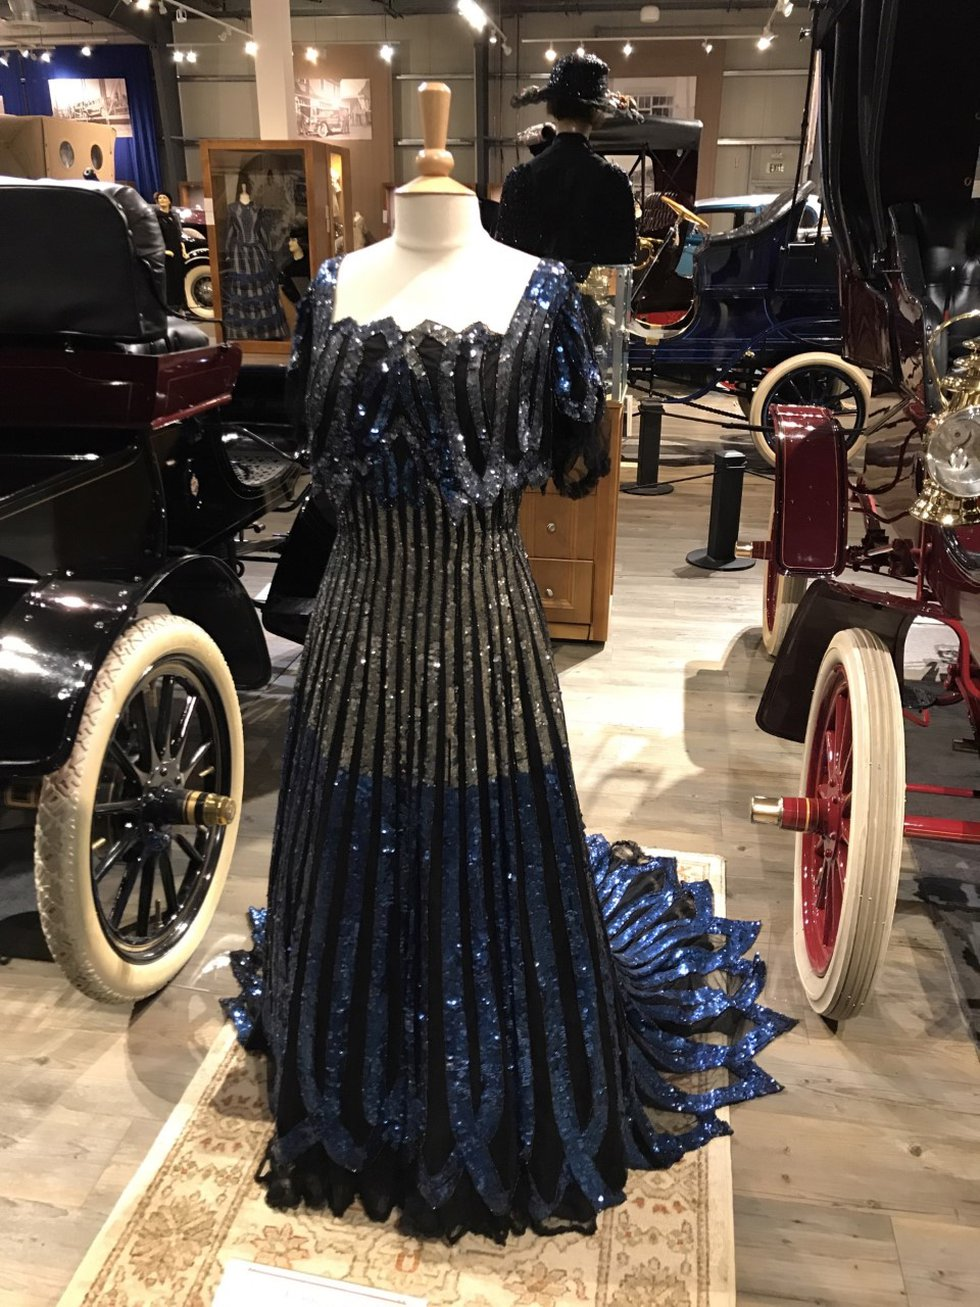 Gown at the Fountainhead Antique Auto Museum